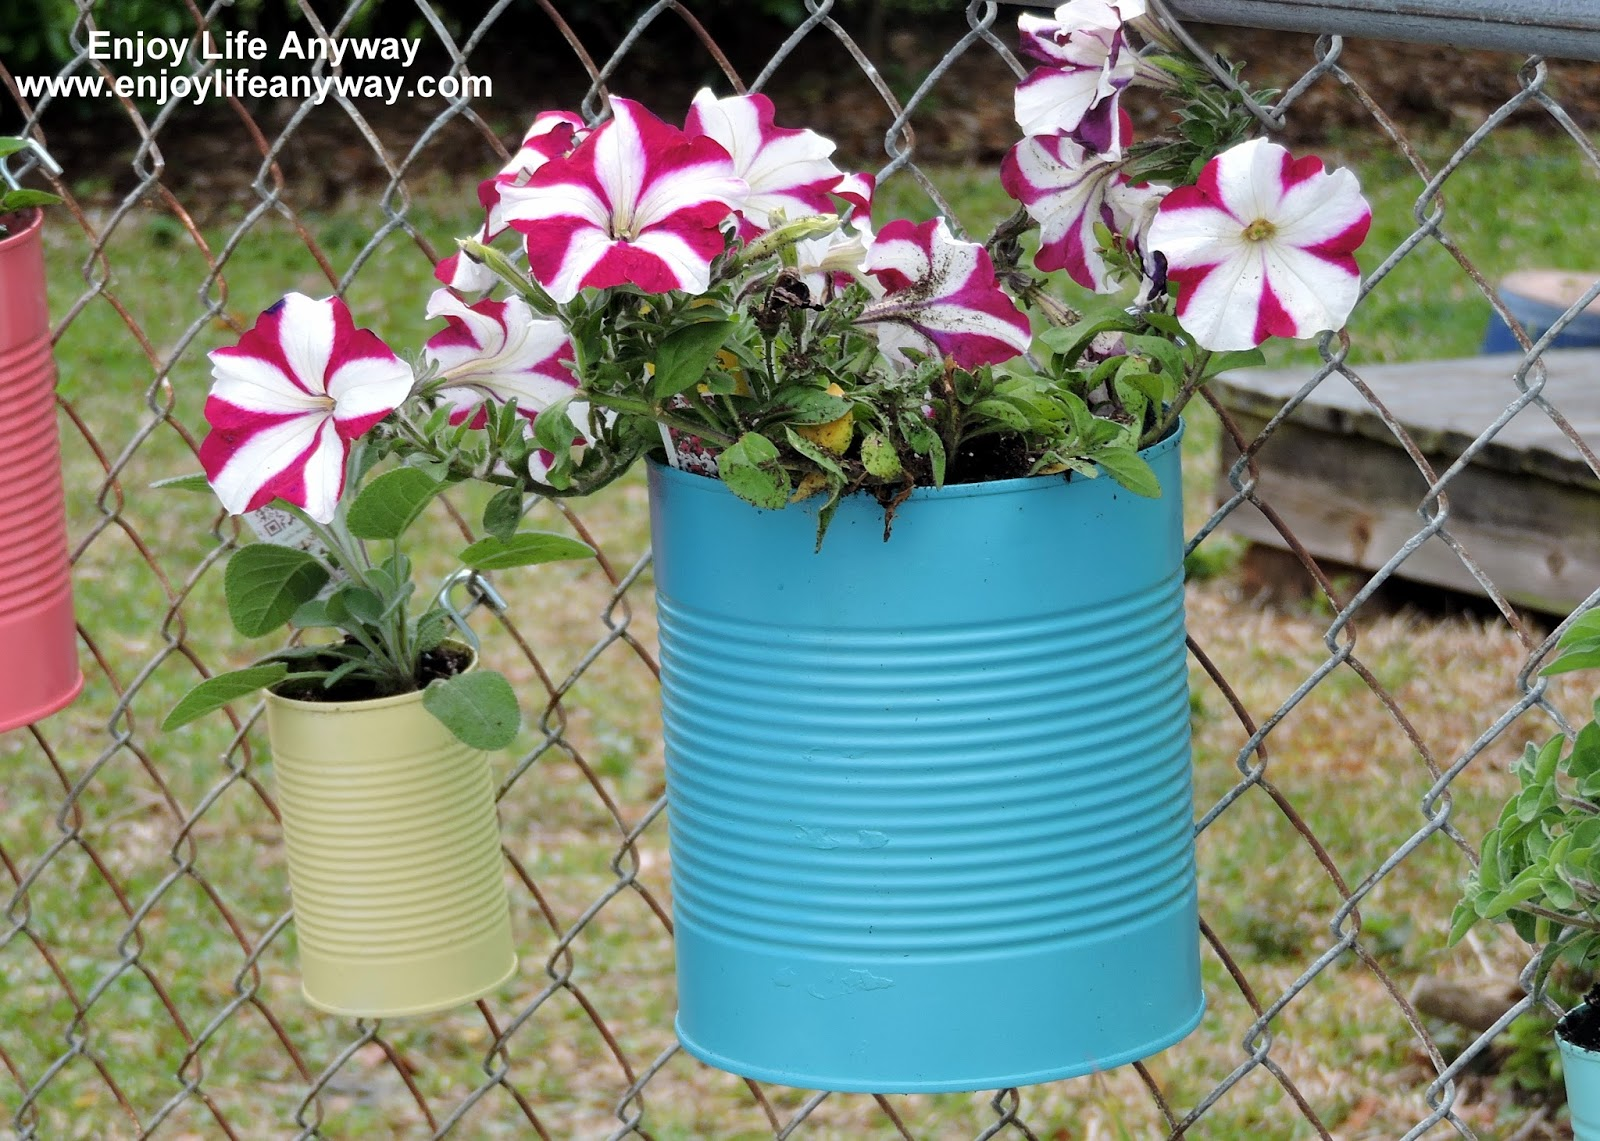 Enjoy Life Anyway: Dress Up A Fence With DIY Tin Can Planters